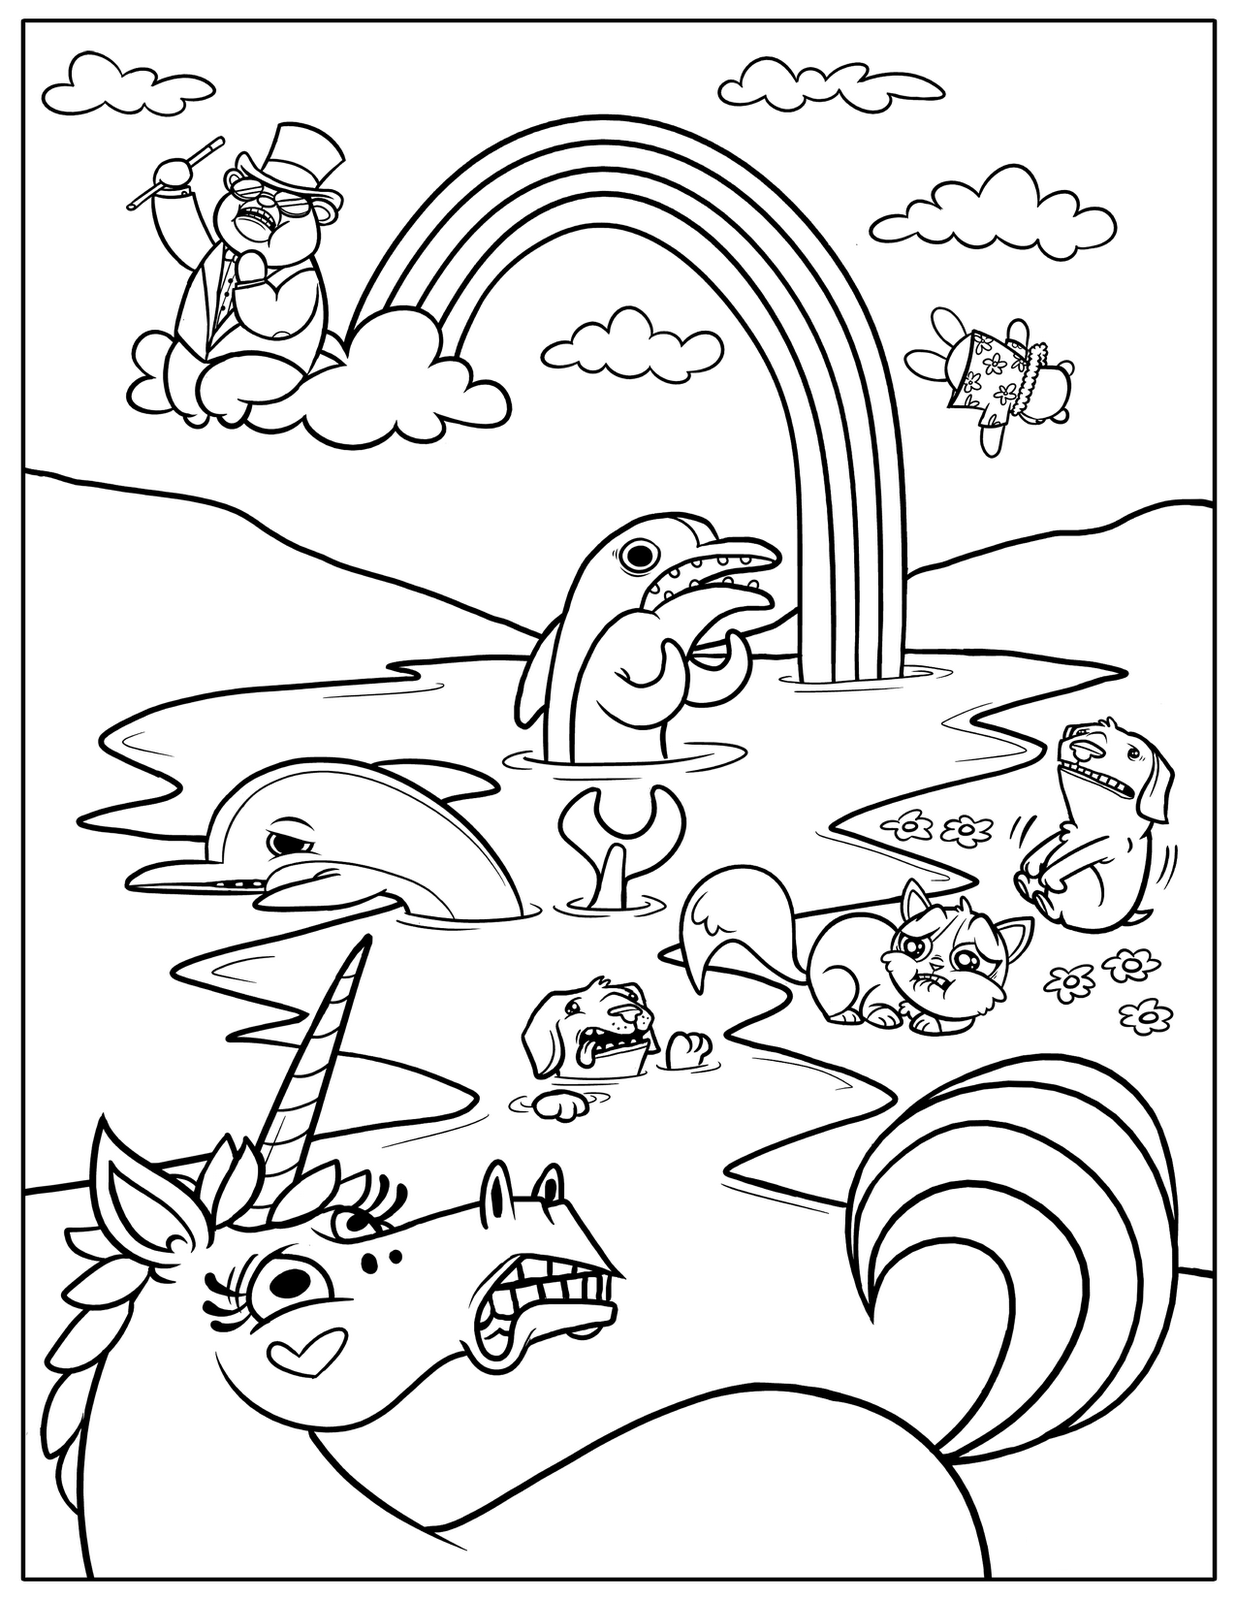 fun colouring pages for kids free printable rainbow coloring pages for kids colouring pages for kids fun